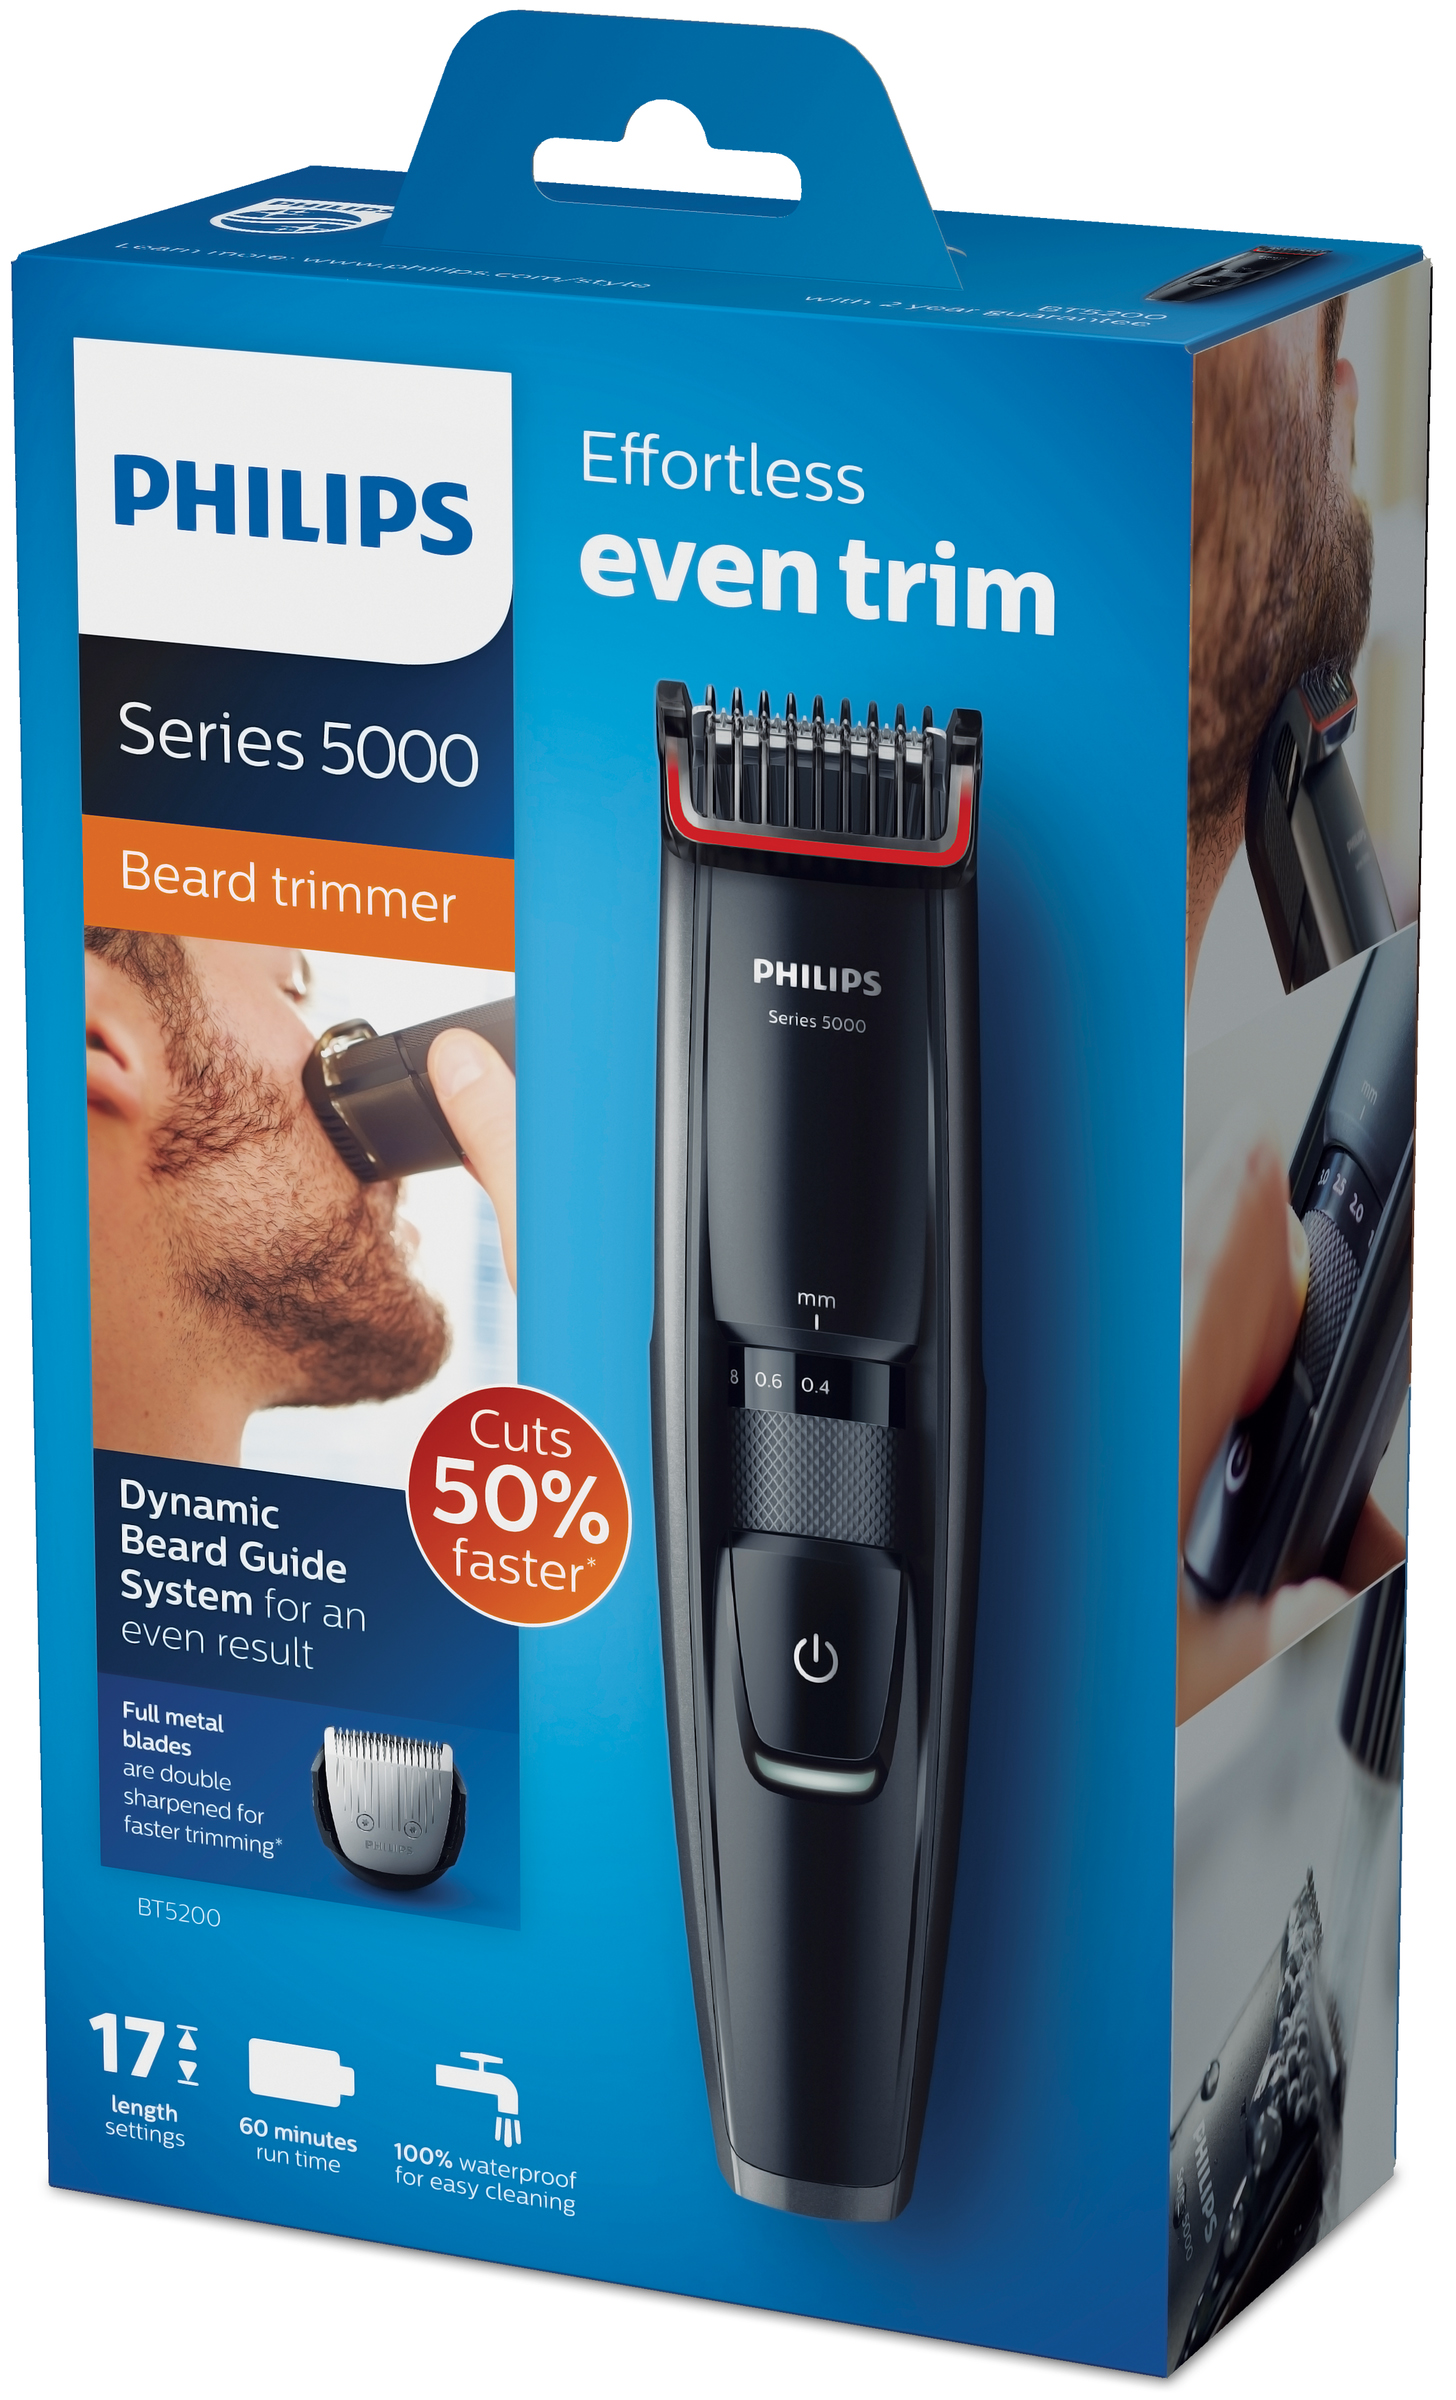 philips beardtrimmer series 5000 stubble trimmer precision cordless bt5200 13 ebay. Black Bedroom Furniture Sets. Home Design Ideas